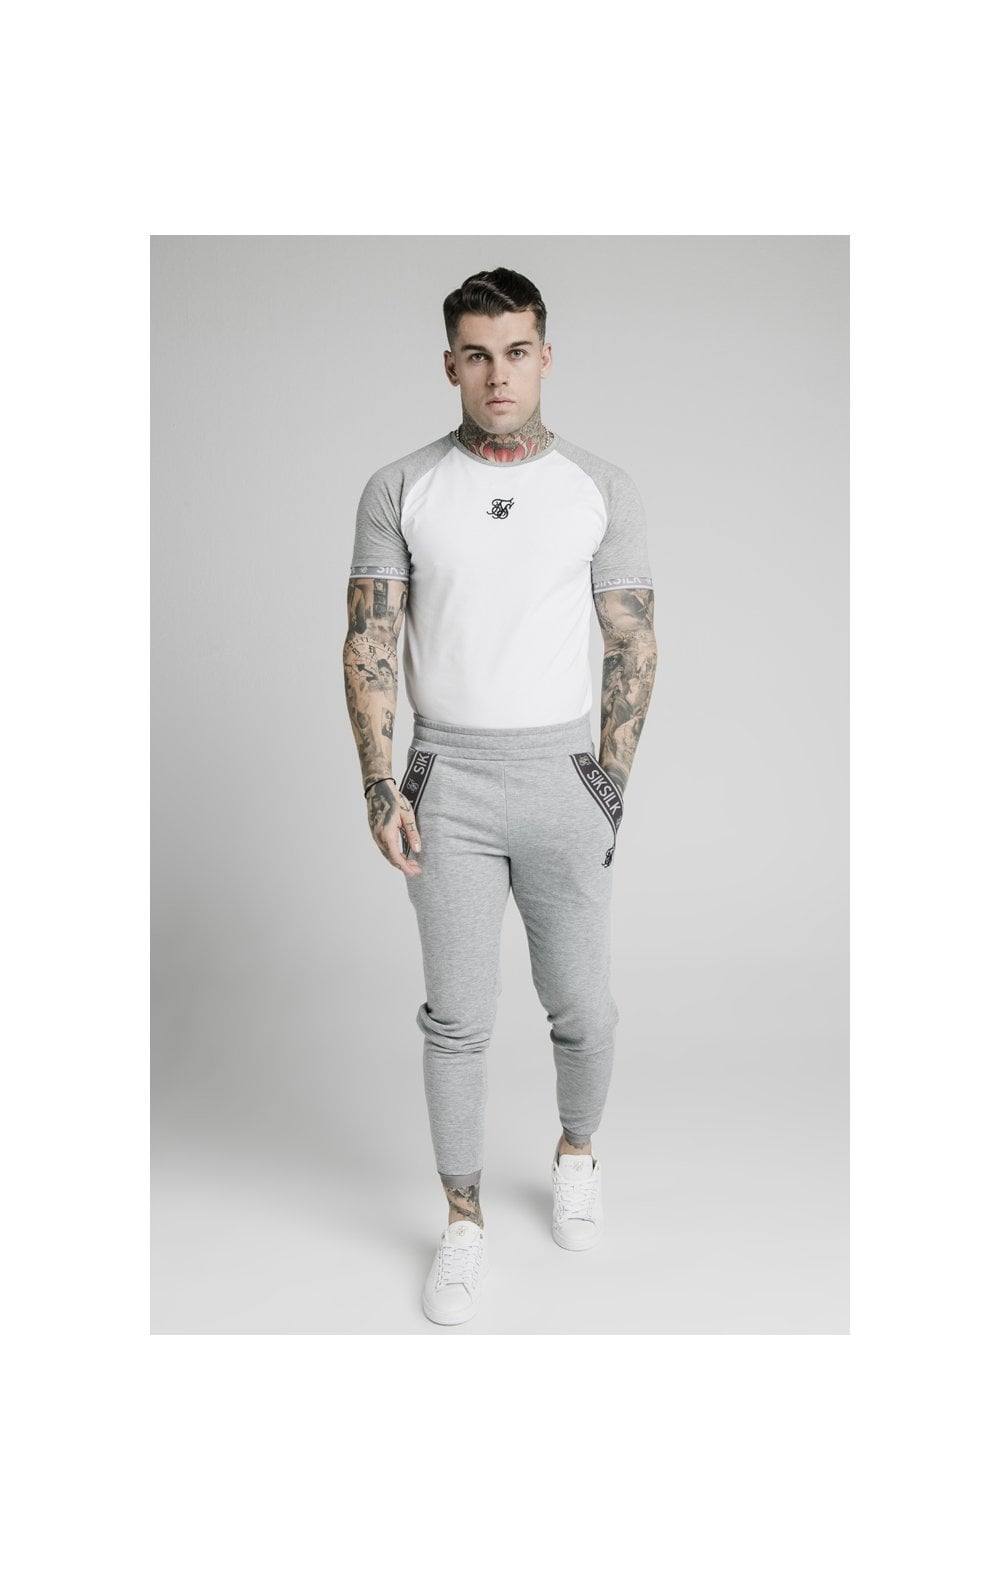 Load image into Gallery viewer, SikSilk S/S Raglan Inset Cuff Gym Tee - White & Grey Marl (5)